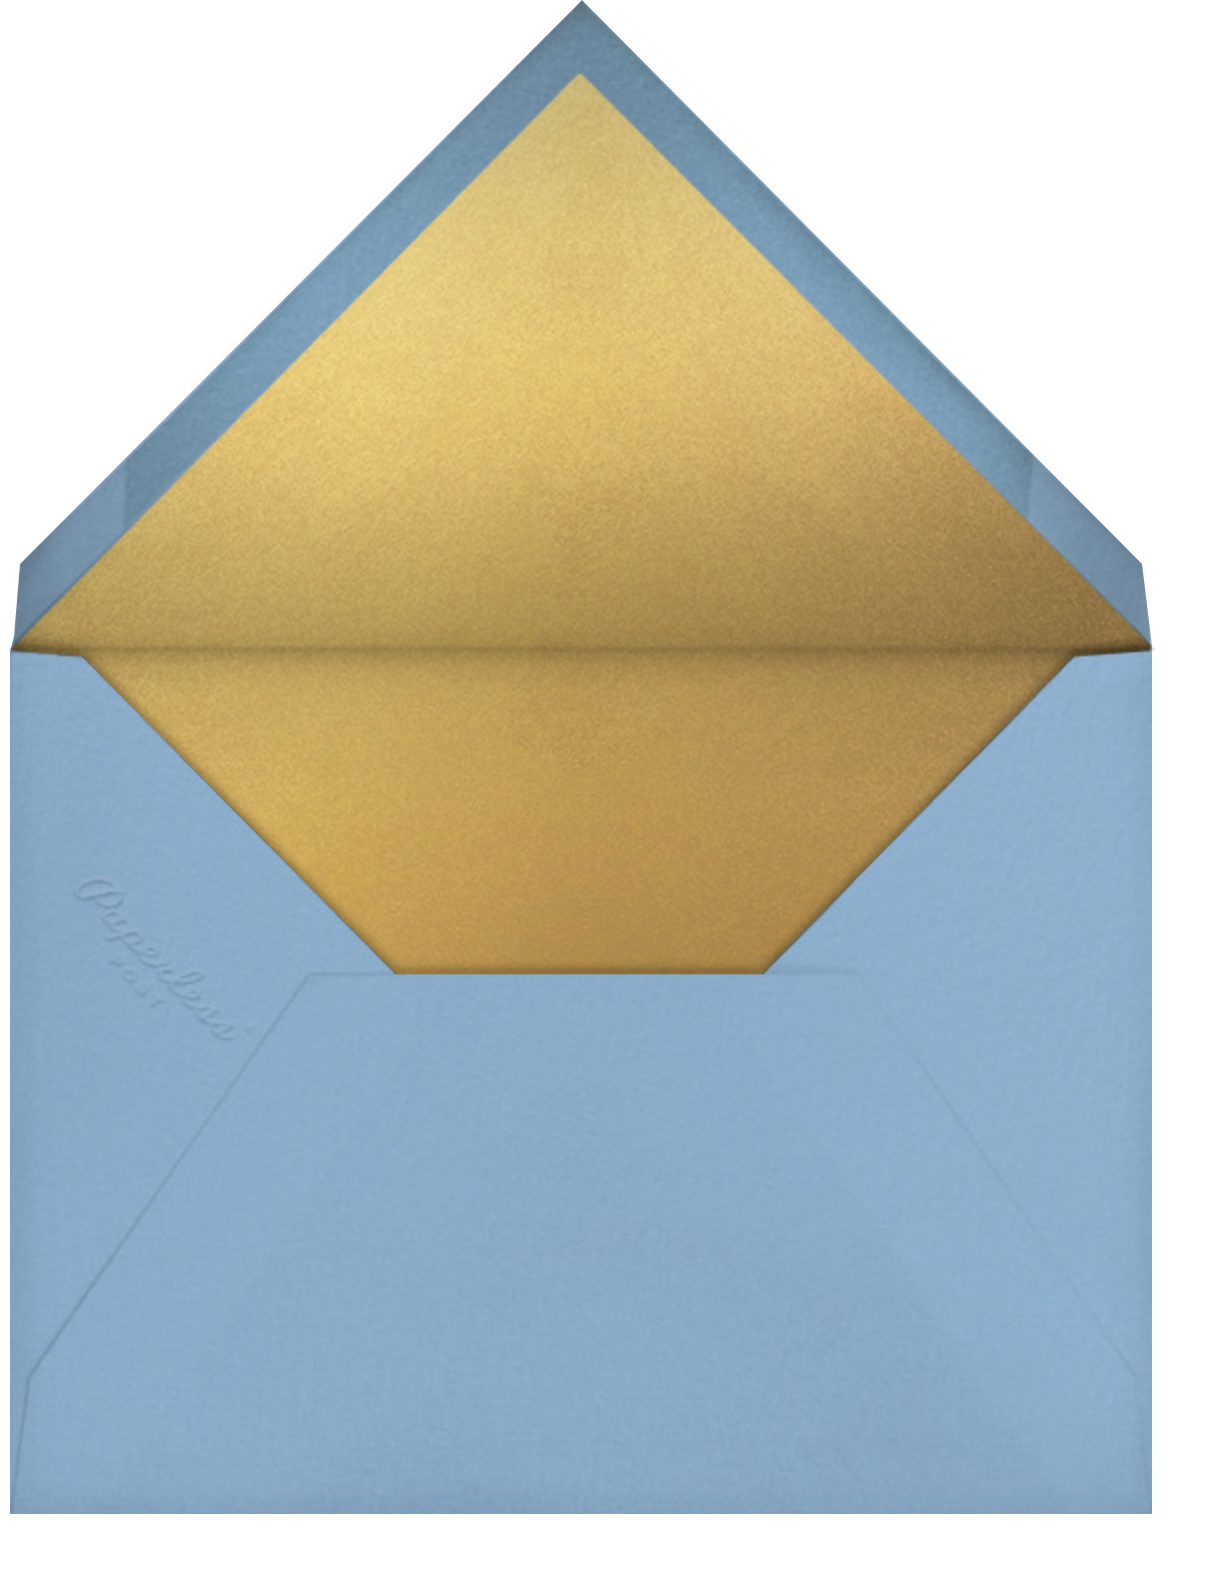 Concentrics - Blue - Paperless Post - New Year's Eve - envelope back